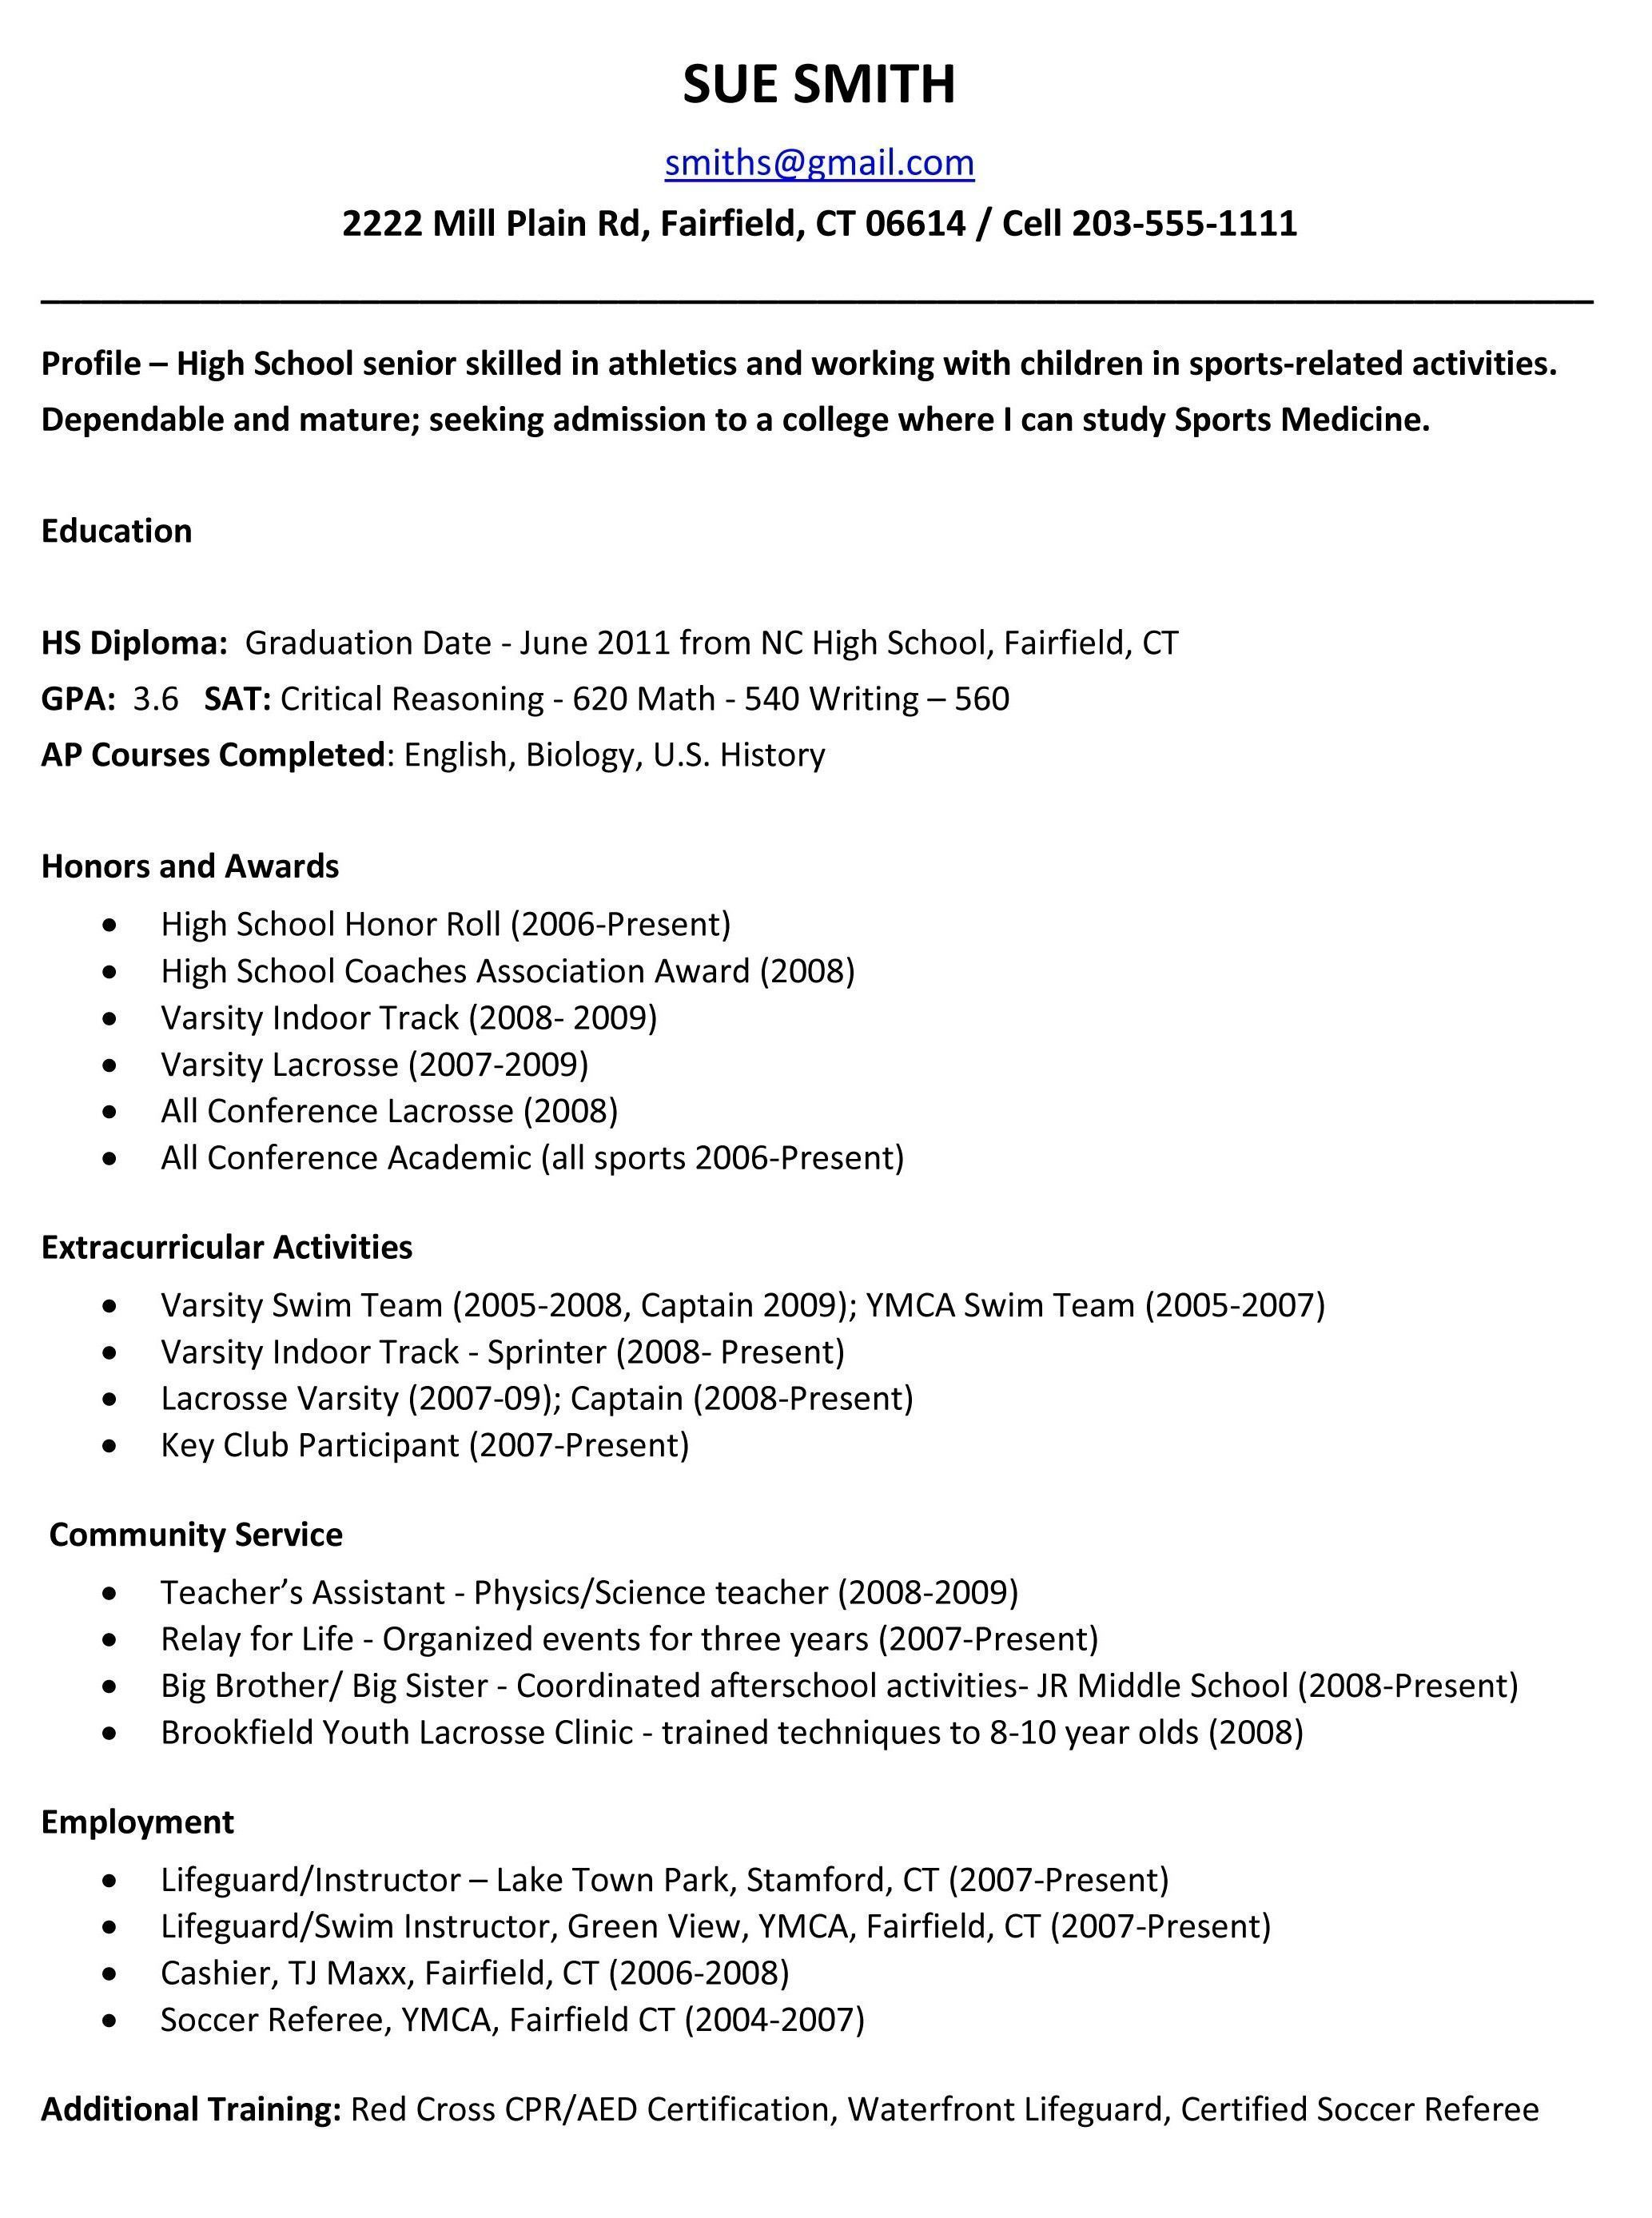 Resume Student Template Ideal Resumejob Pin On Resume Job